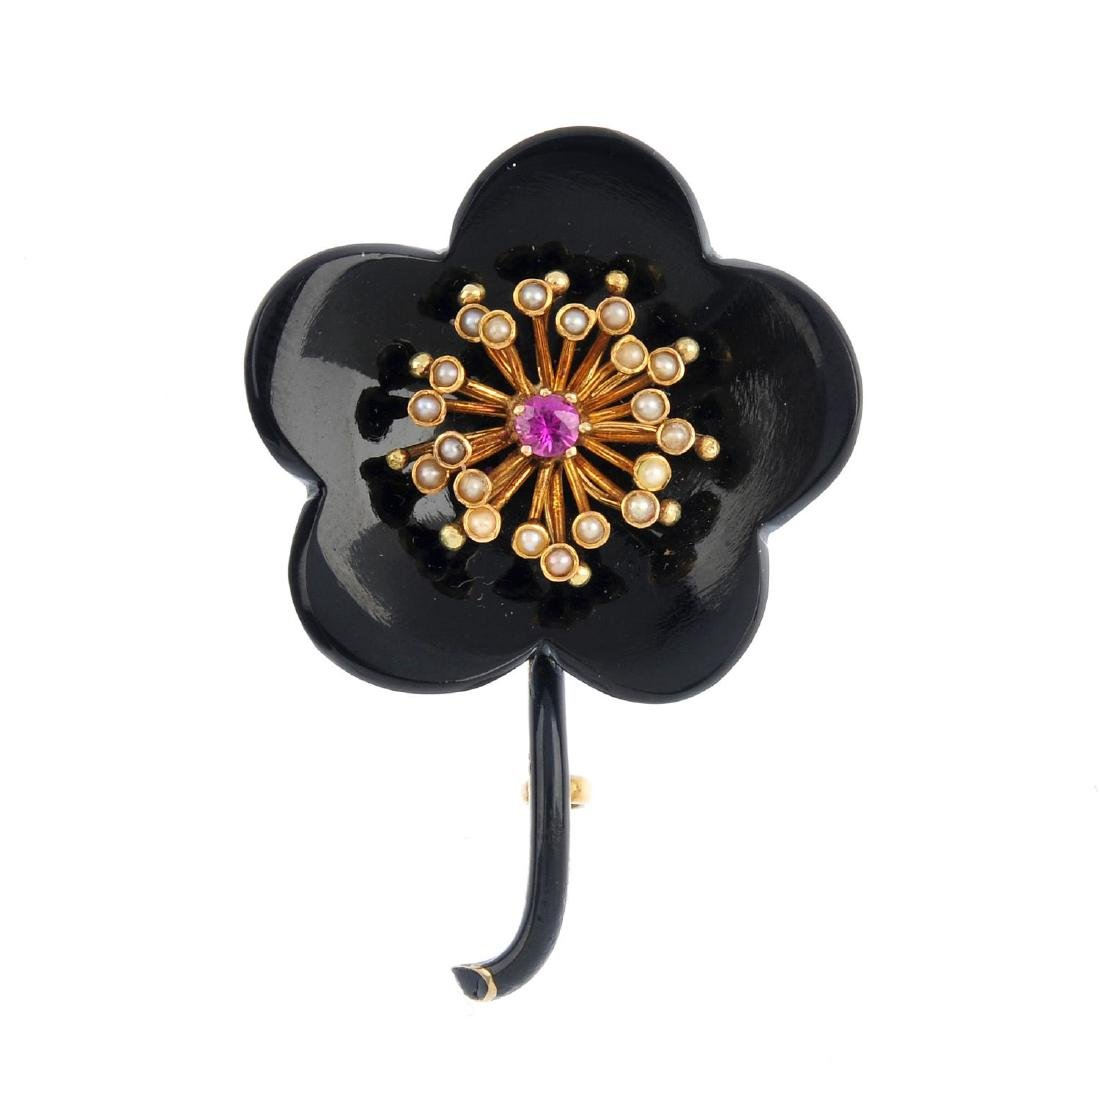 An early 20th century gold, gem-set floral brooch.